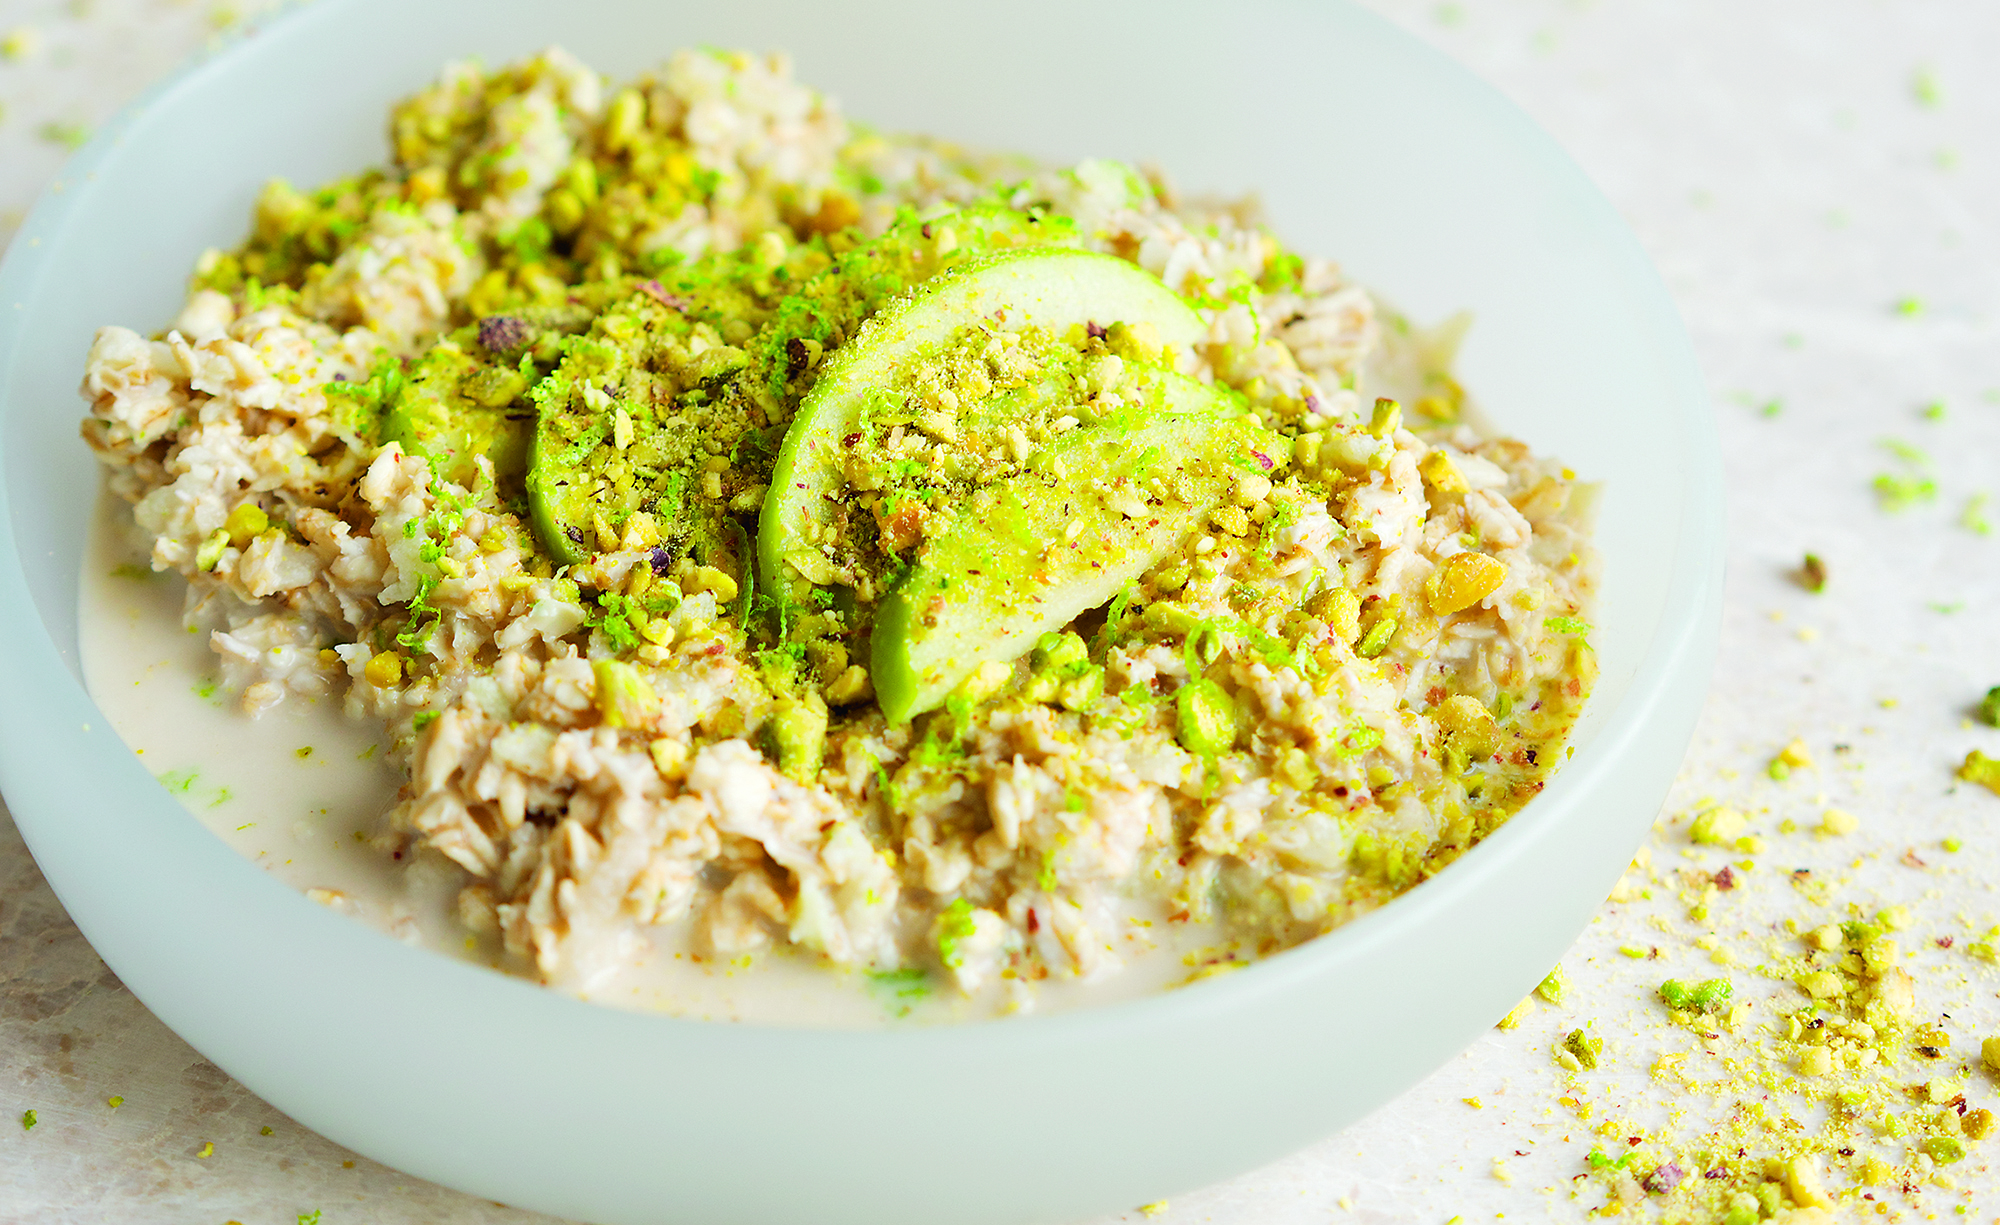 Healthy Breakfast Recipes to start your day off right